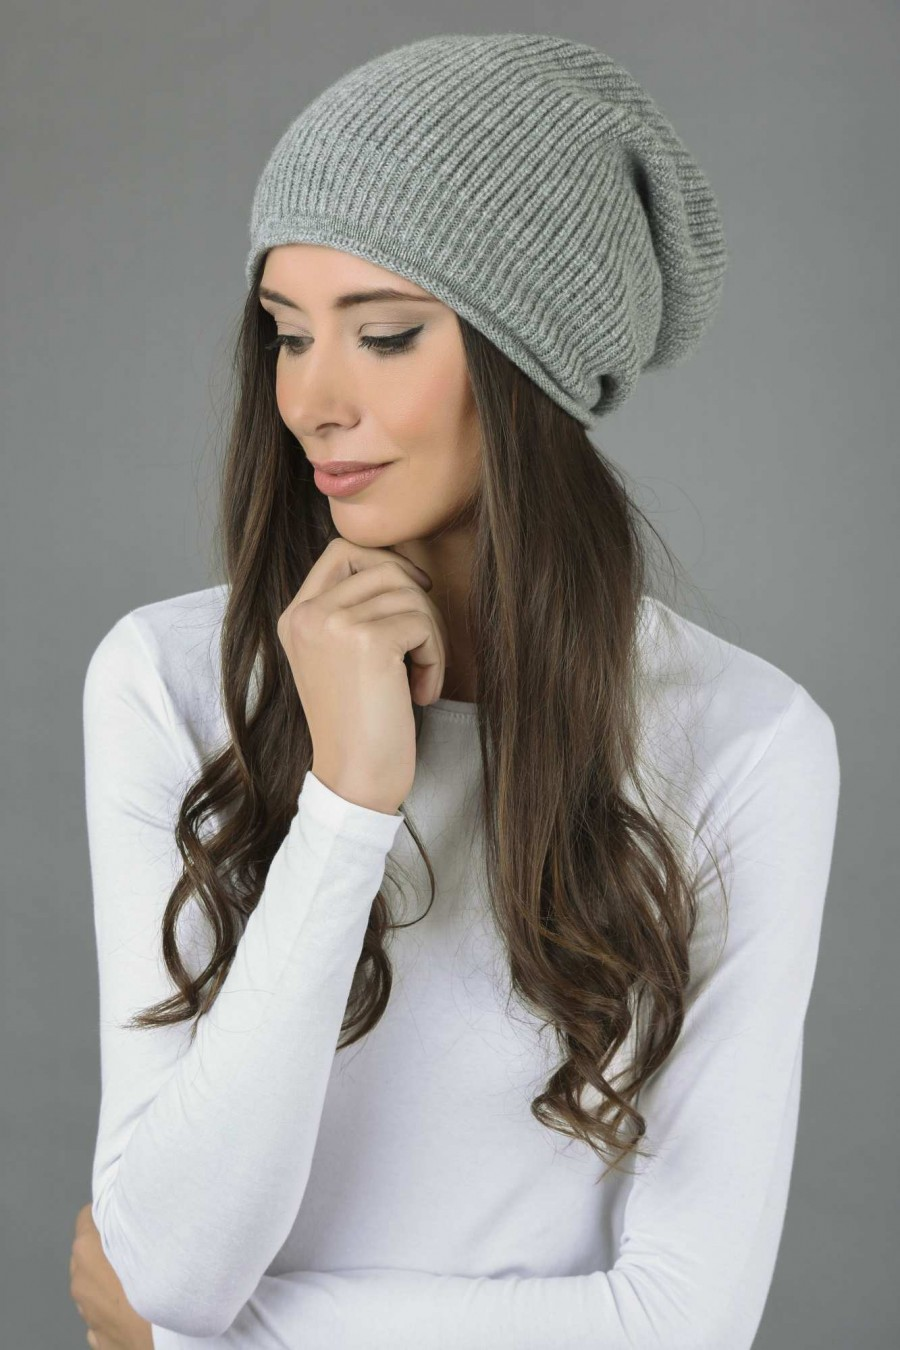 Pure Cashmere Ribbed Knitted Slouchy Beanie Hat in Light Grey ... 72bddfbab62